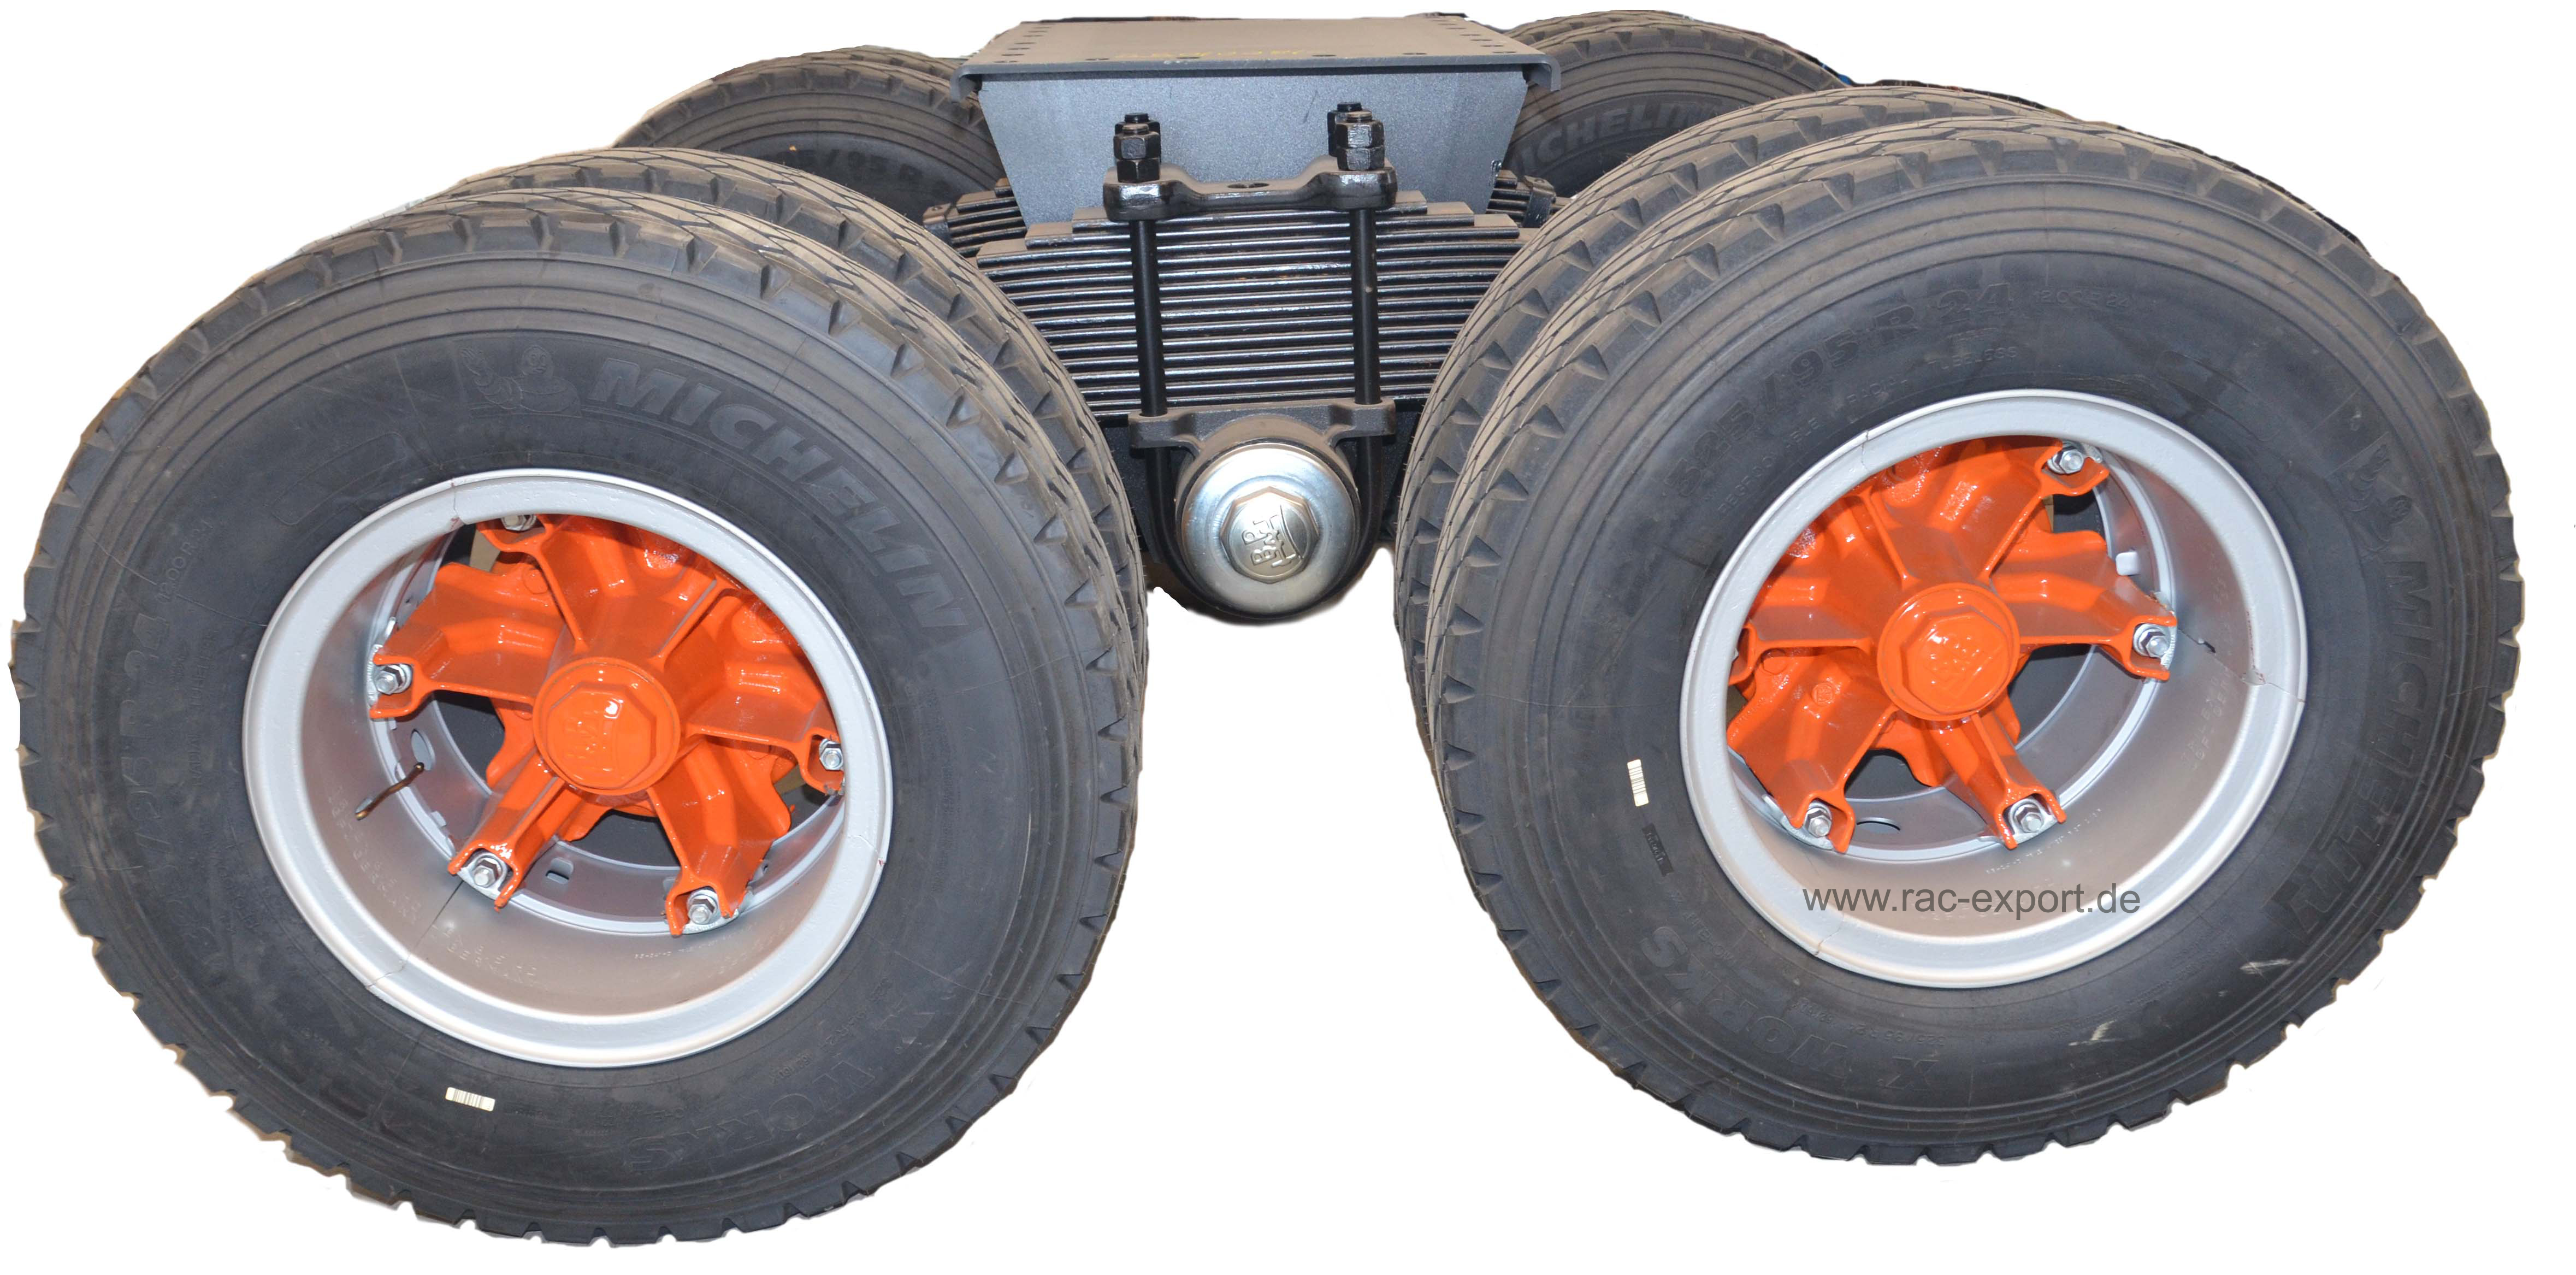 Trailer Axles With Wheels : Spare parts and components for heavy duty trailer semi